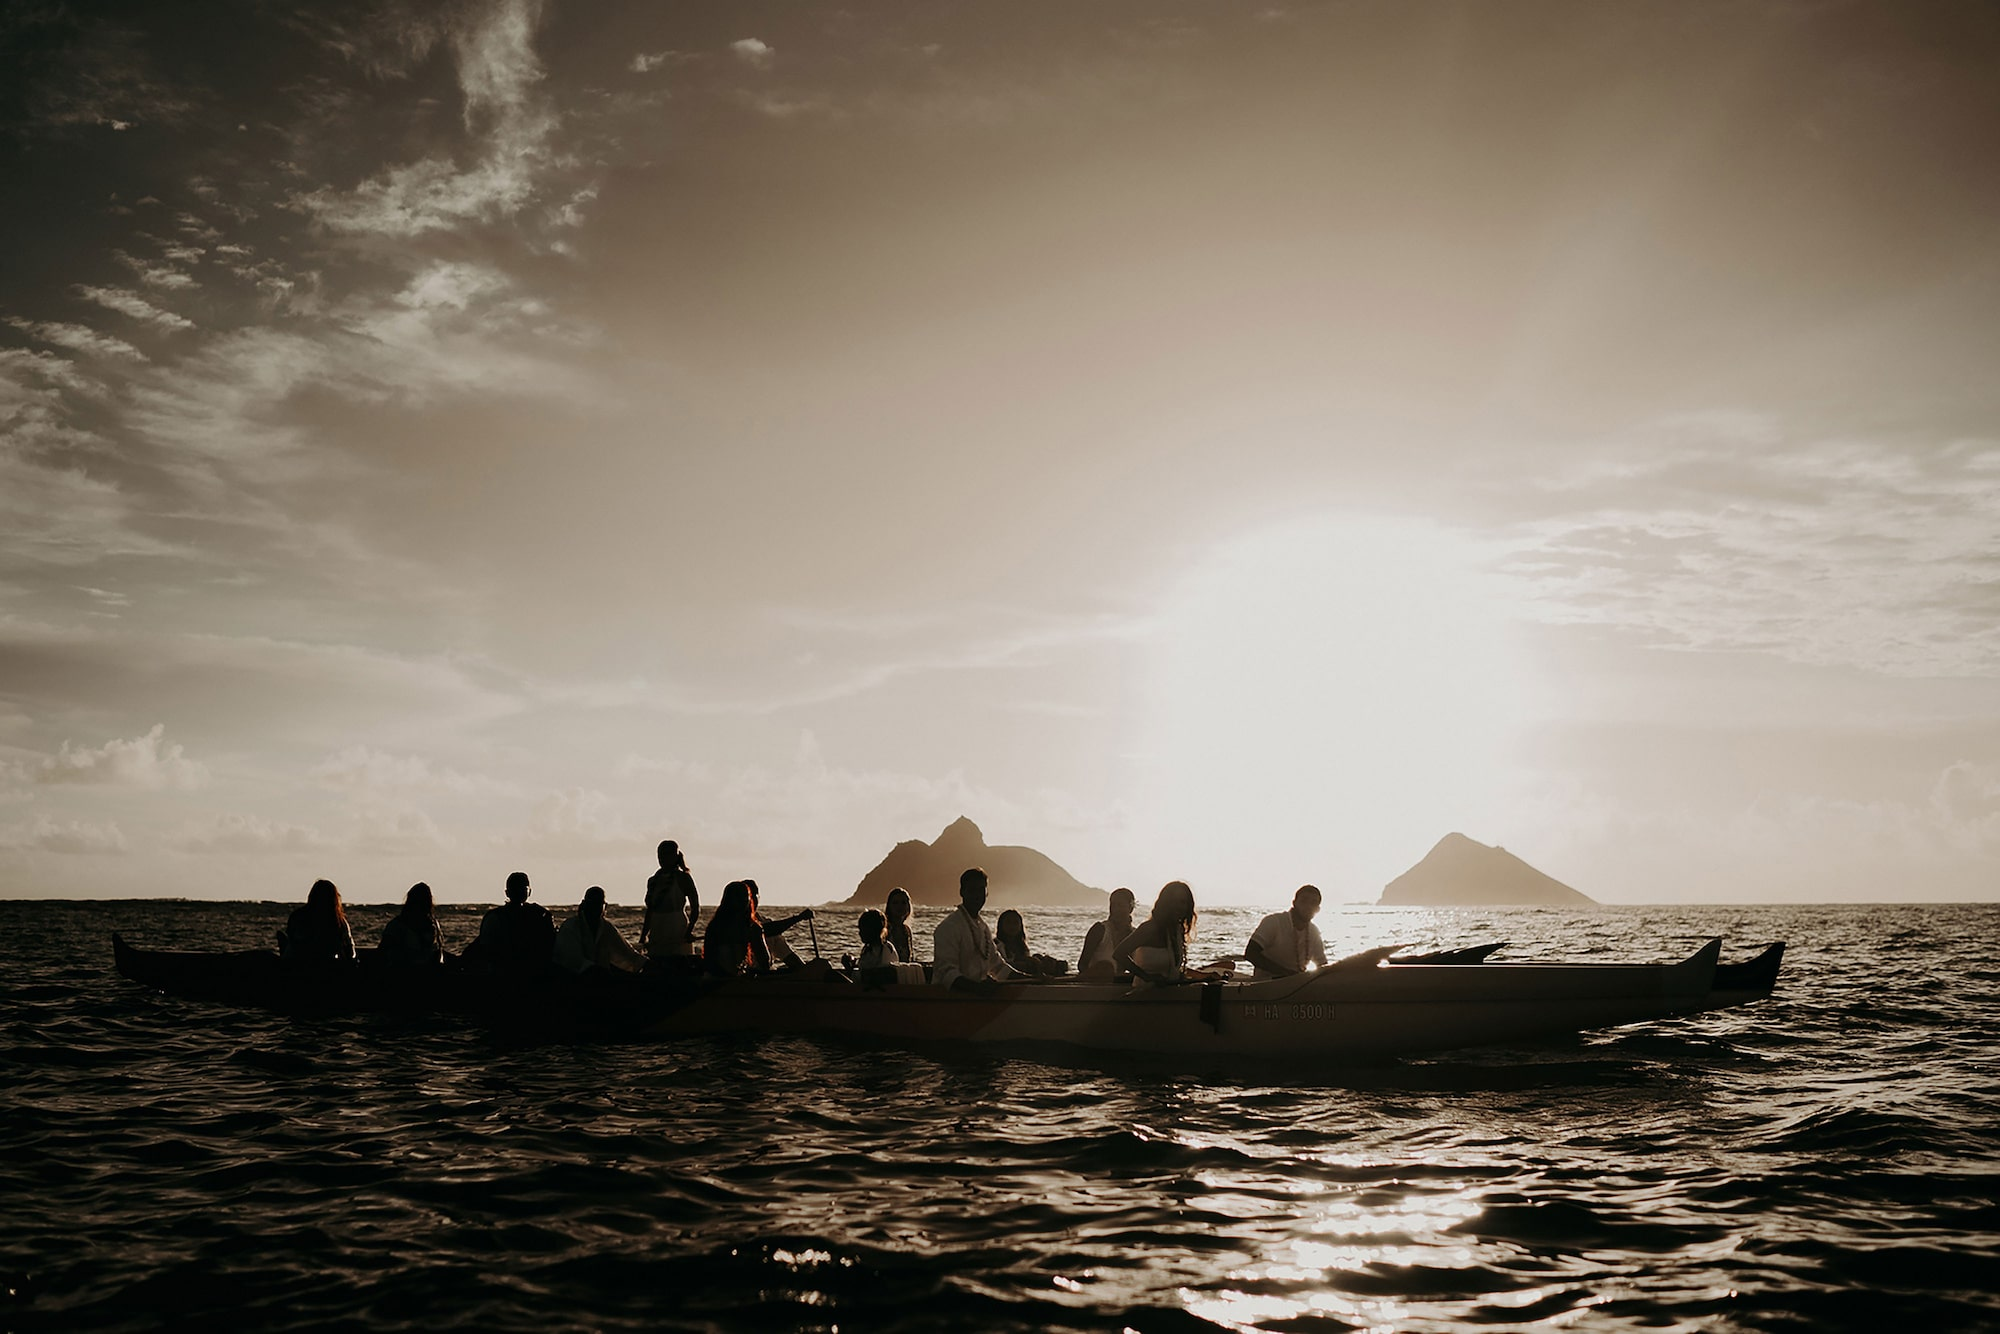 the quirky sony alpha 9 silhouette of people in a boat with mountains in the distance